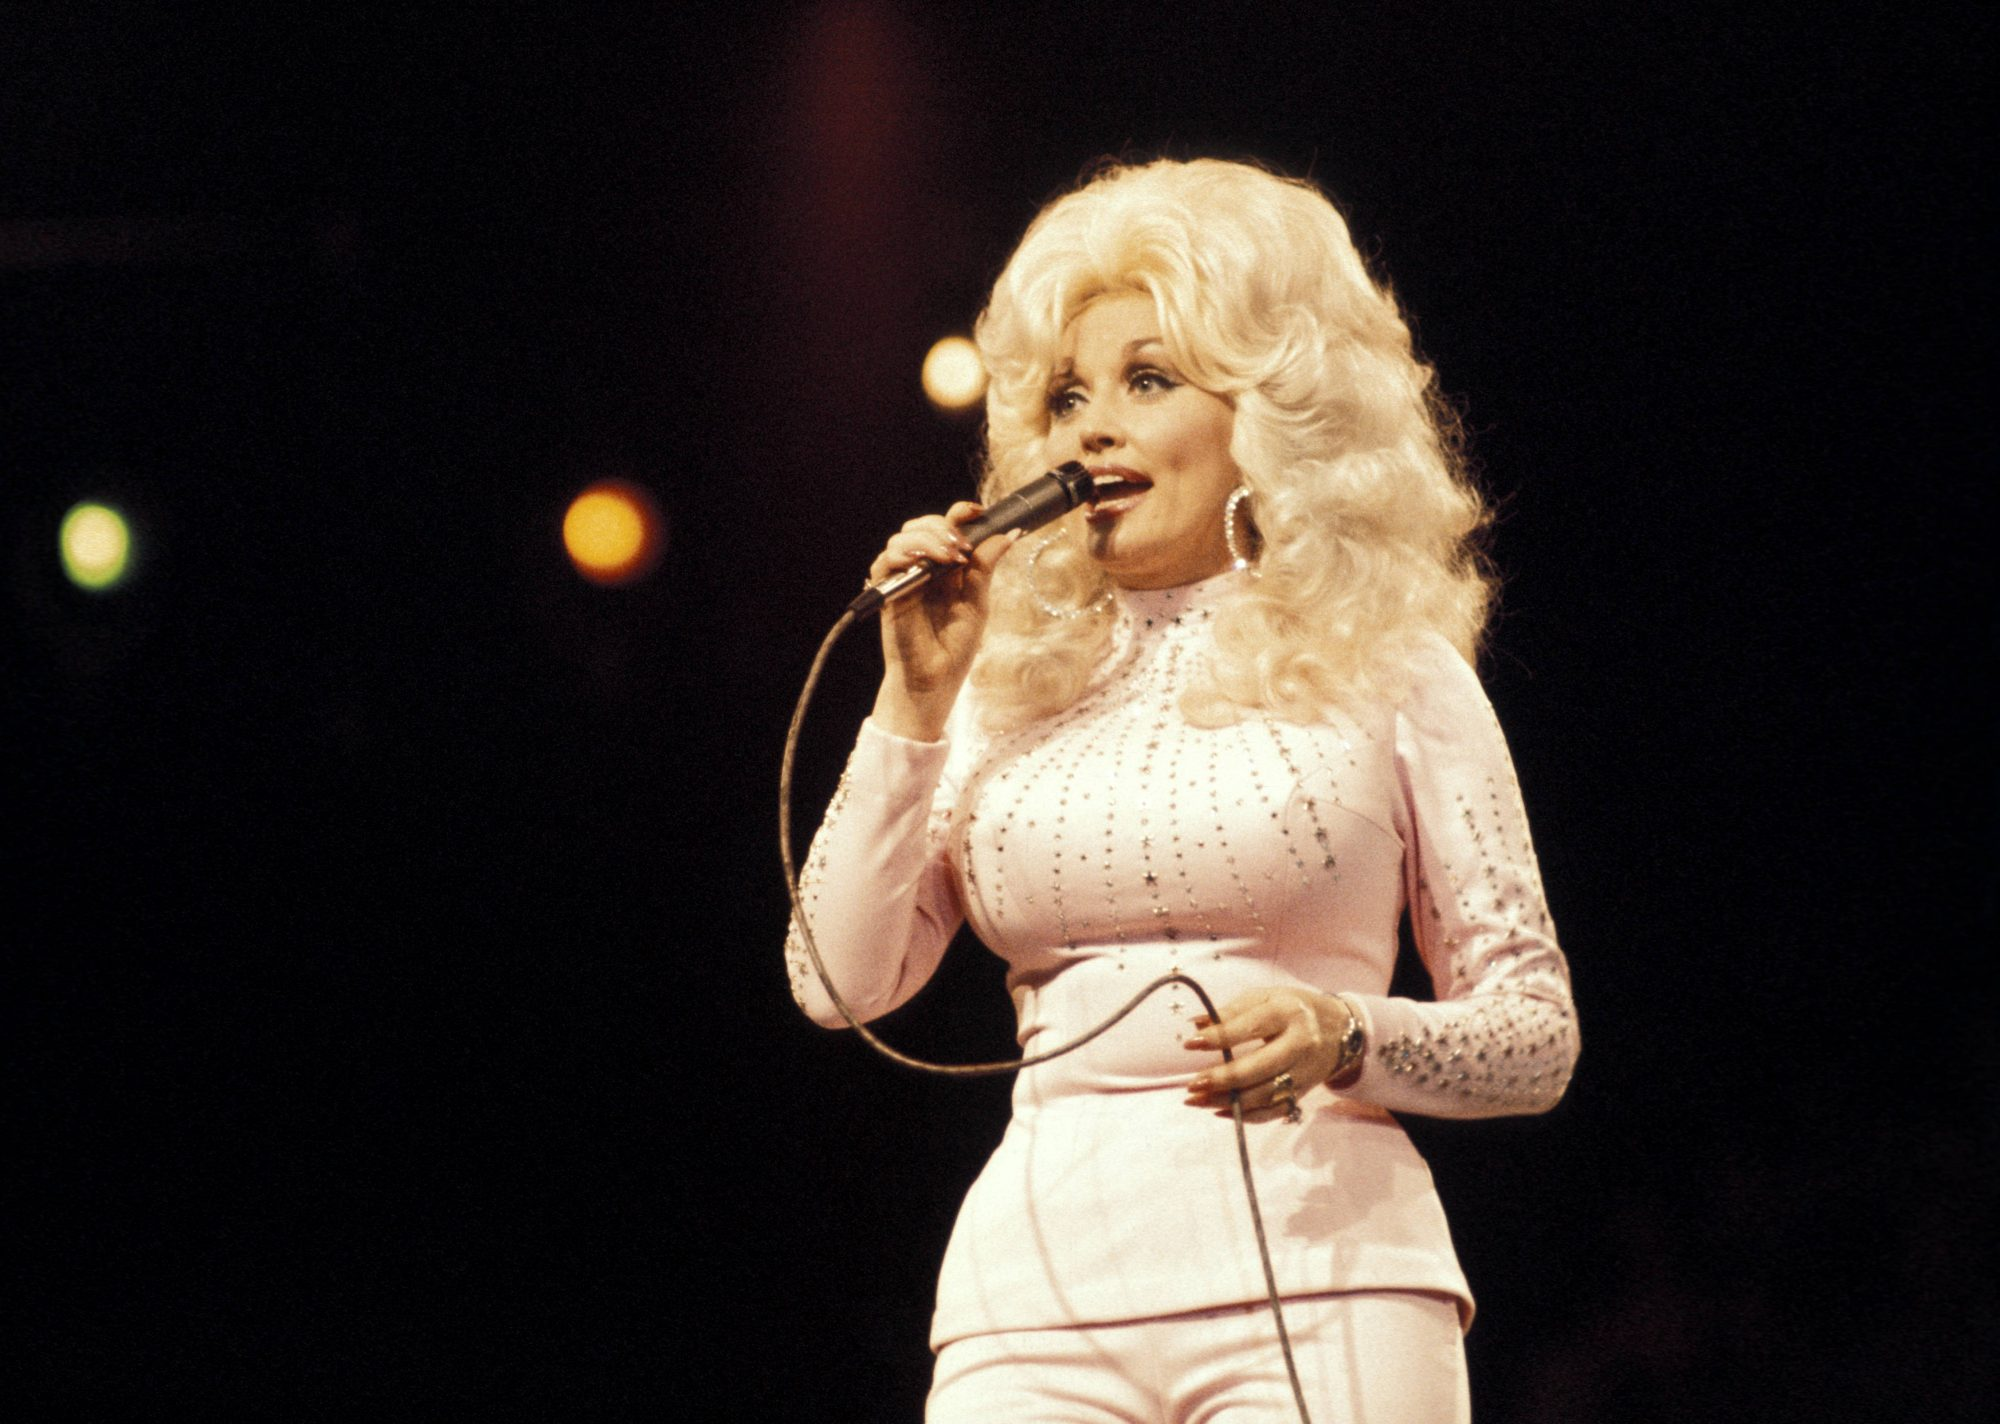 Dolly Parton Singing 1976